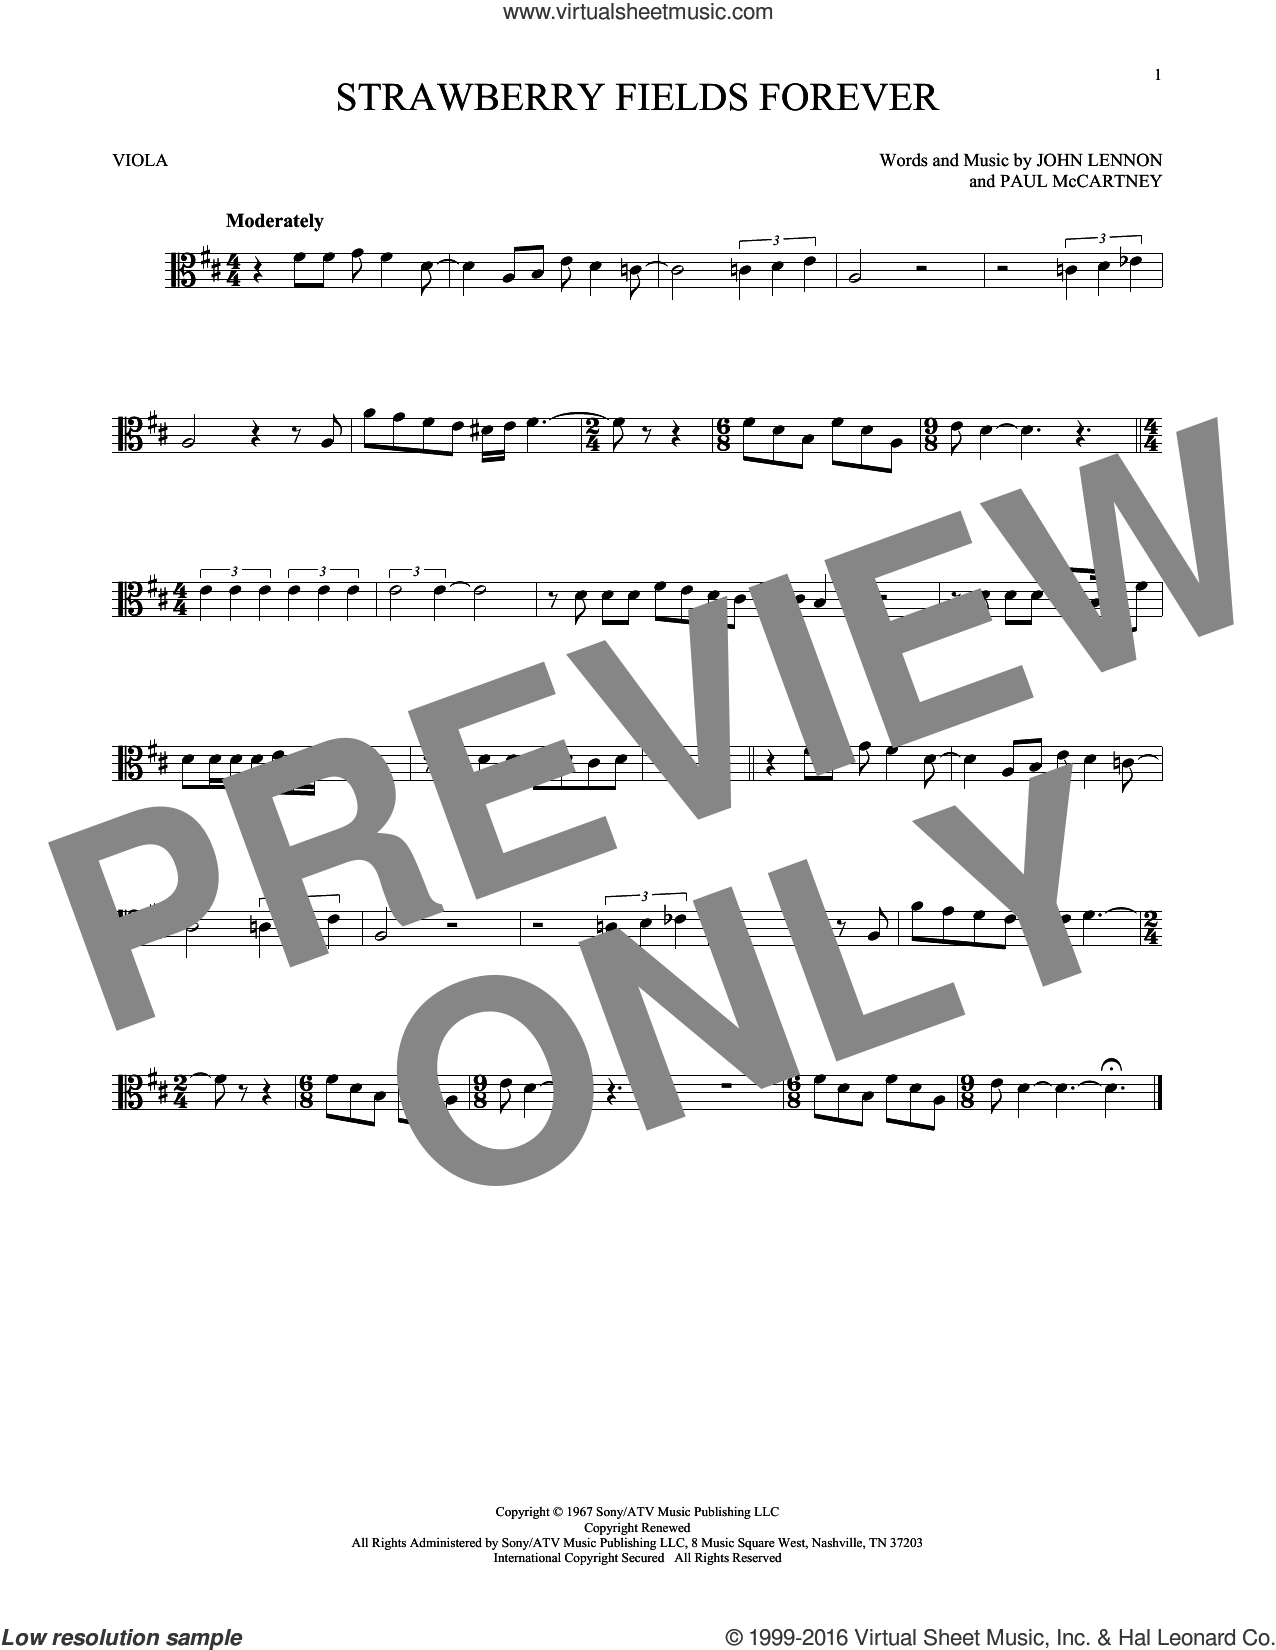 Strawberry Fields Forever sheet music for viola solo by The Beatles, John Lennon and Paul McCartney, intermediate skill level